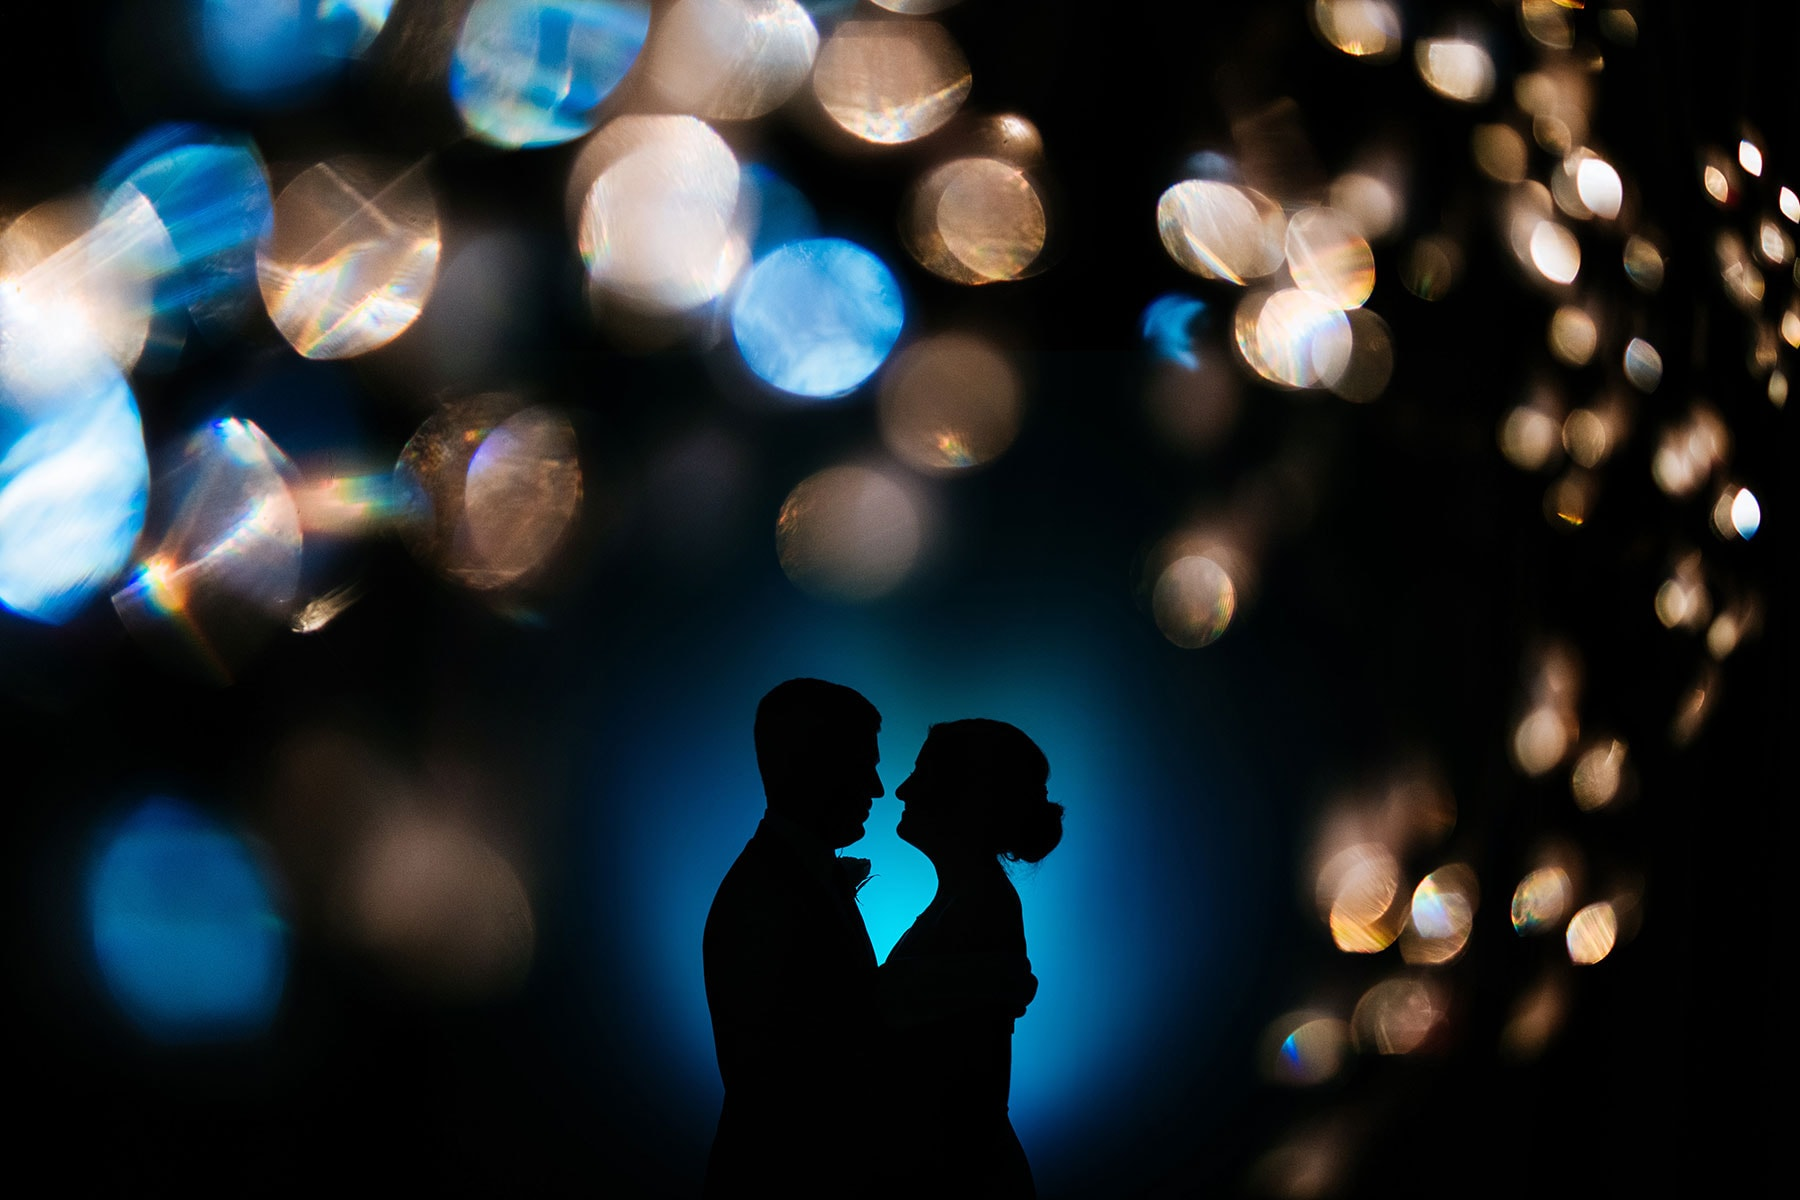 silhouette wedding portrait